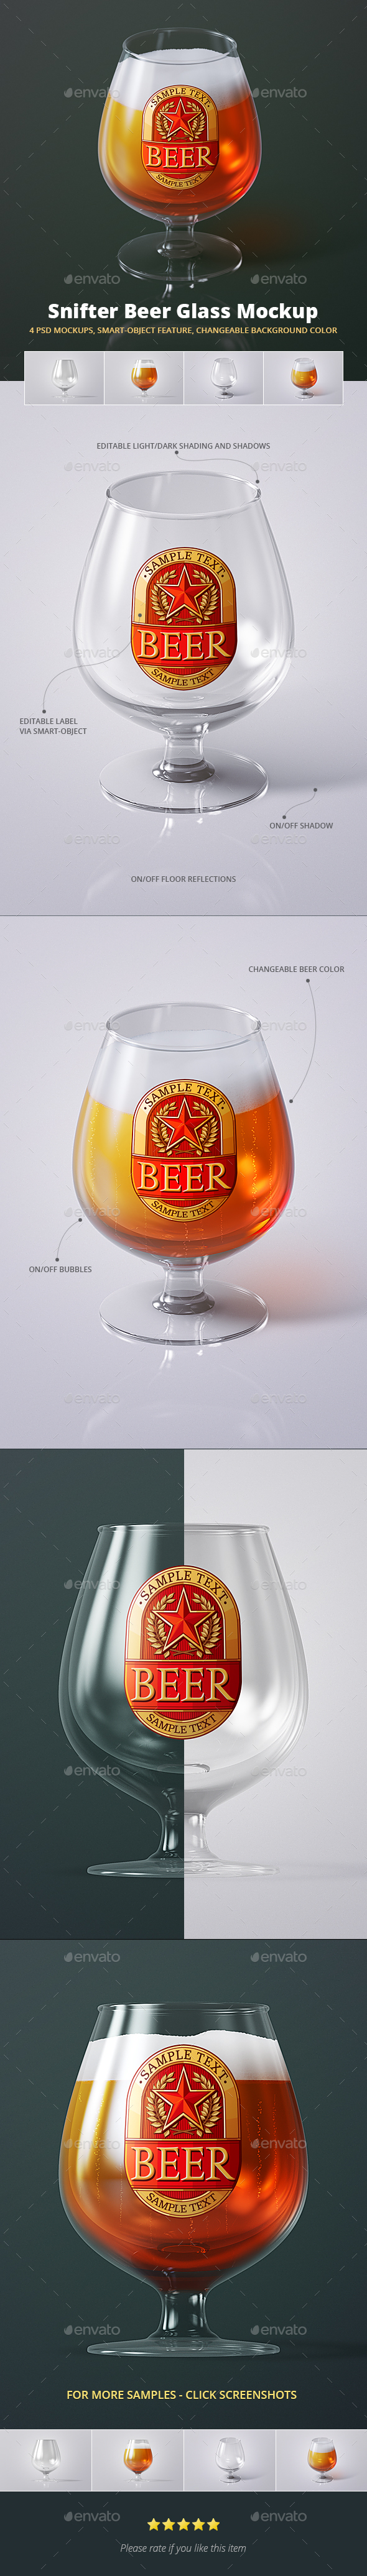 Beer Glass Mock-up - Snifter - Food and Drink Packaging